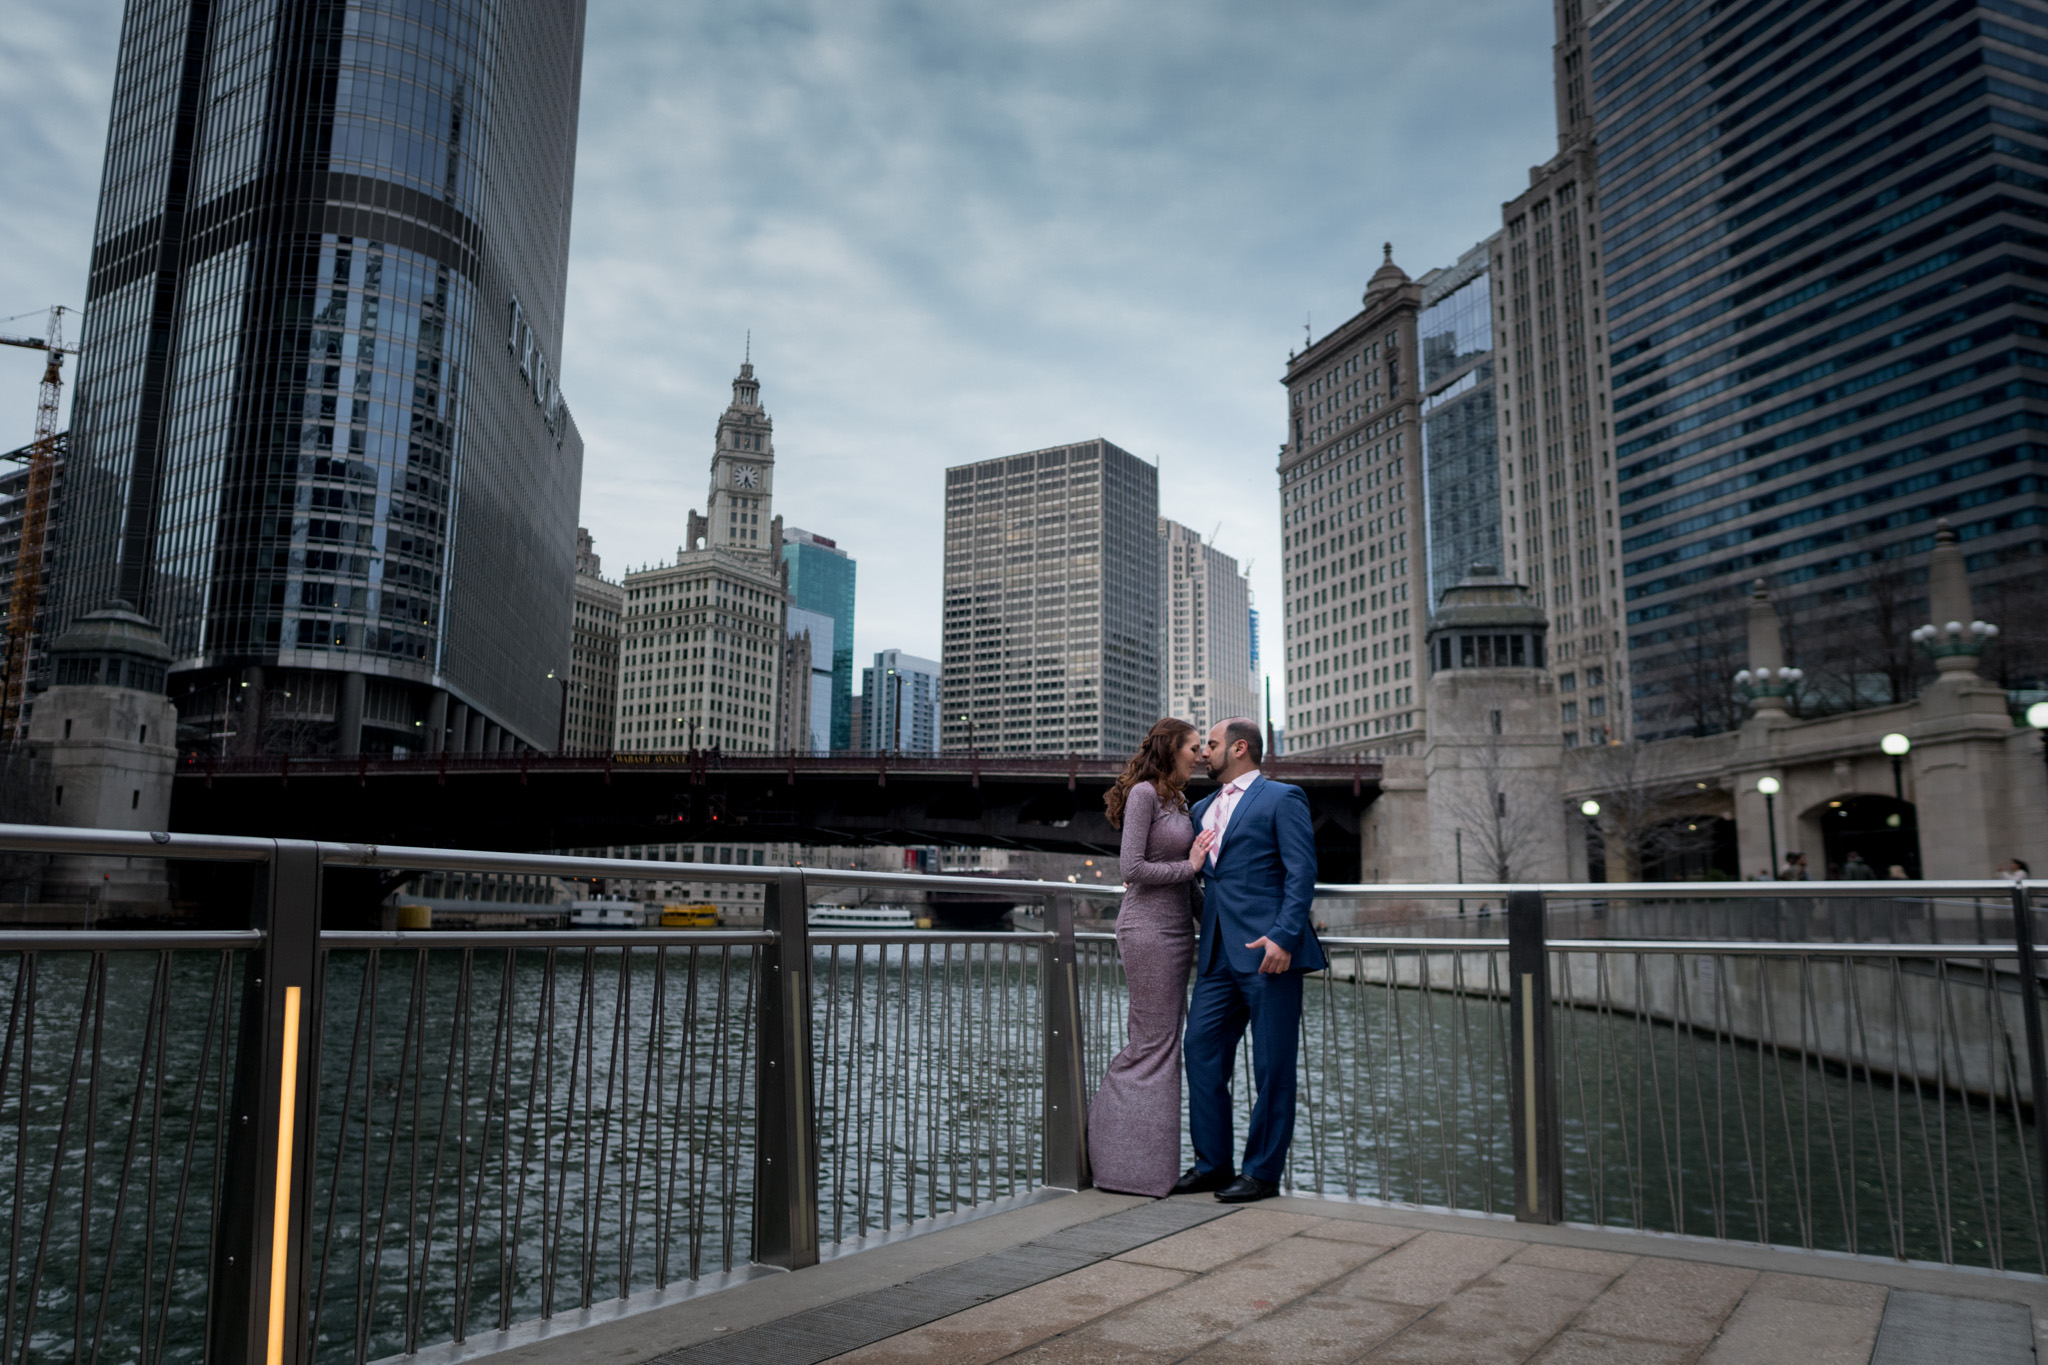 engagement on the Chicago River